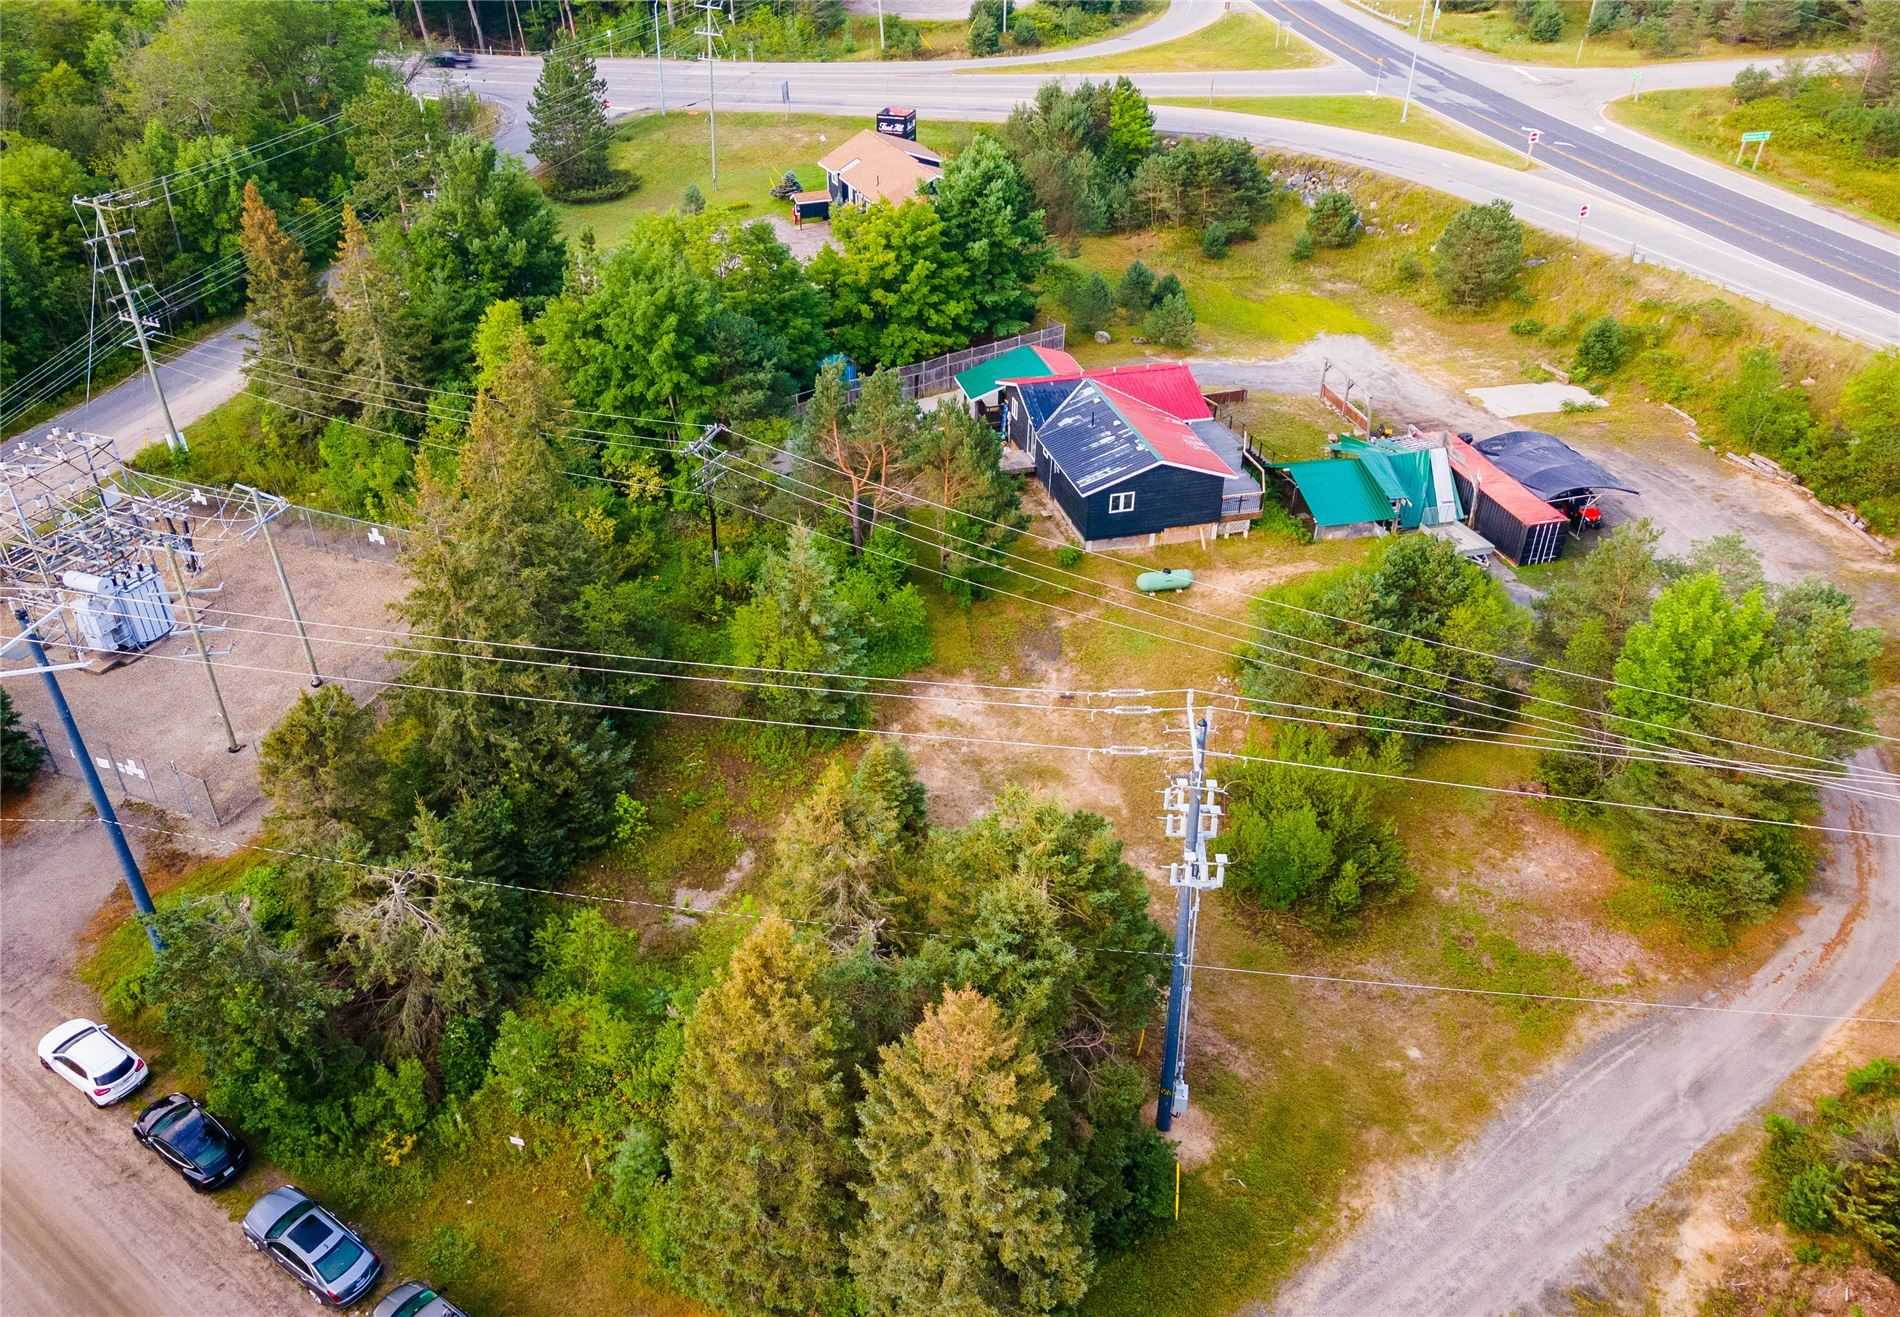 1011 Gostick Rd, Muskoka Lakes, Ontario P0C1H0, 3 Bedrooms Bedrooms, 7 Rooms Rooms,1 BathroomBathrooms,Detached,For Sale,Gostick,X5341287